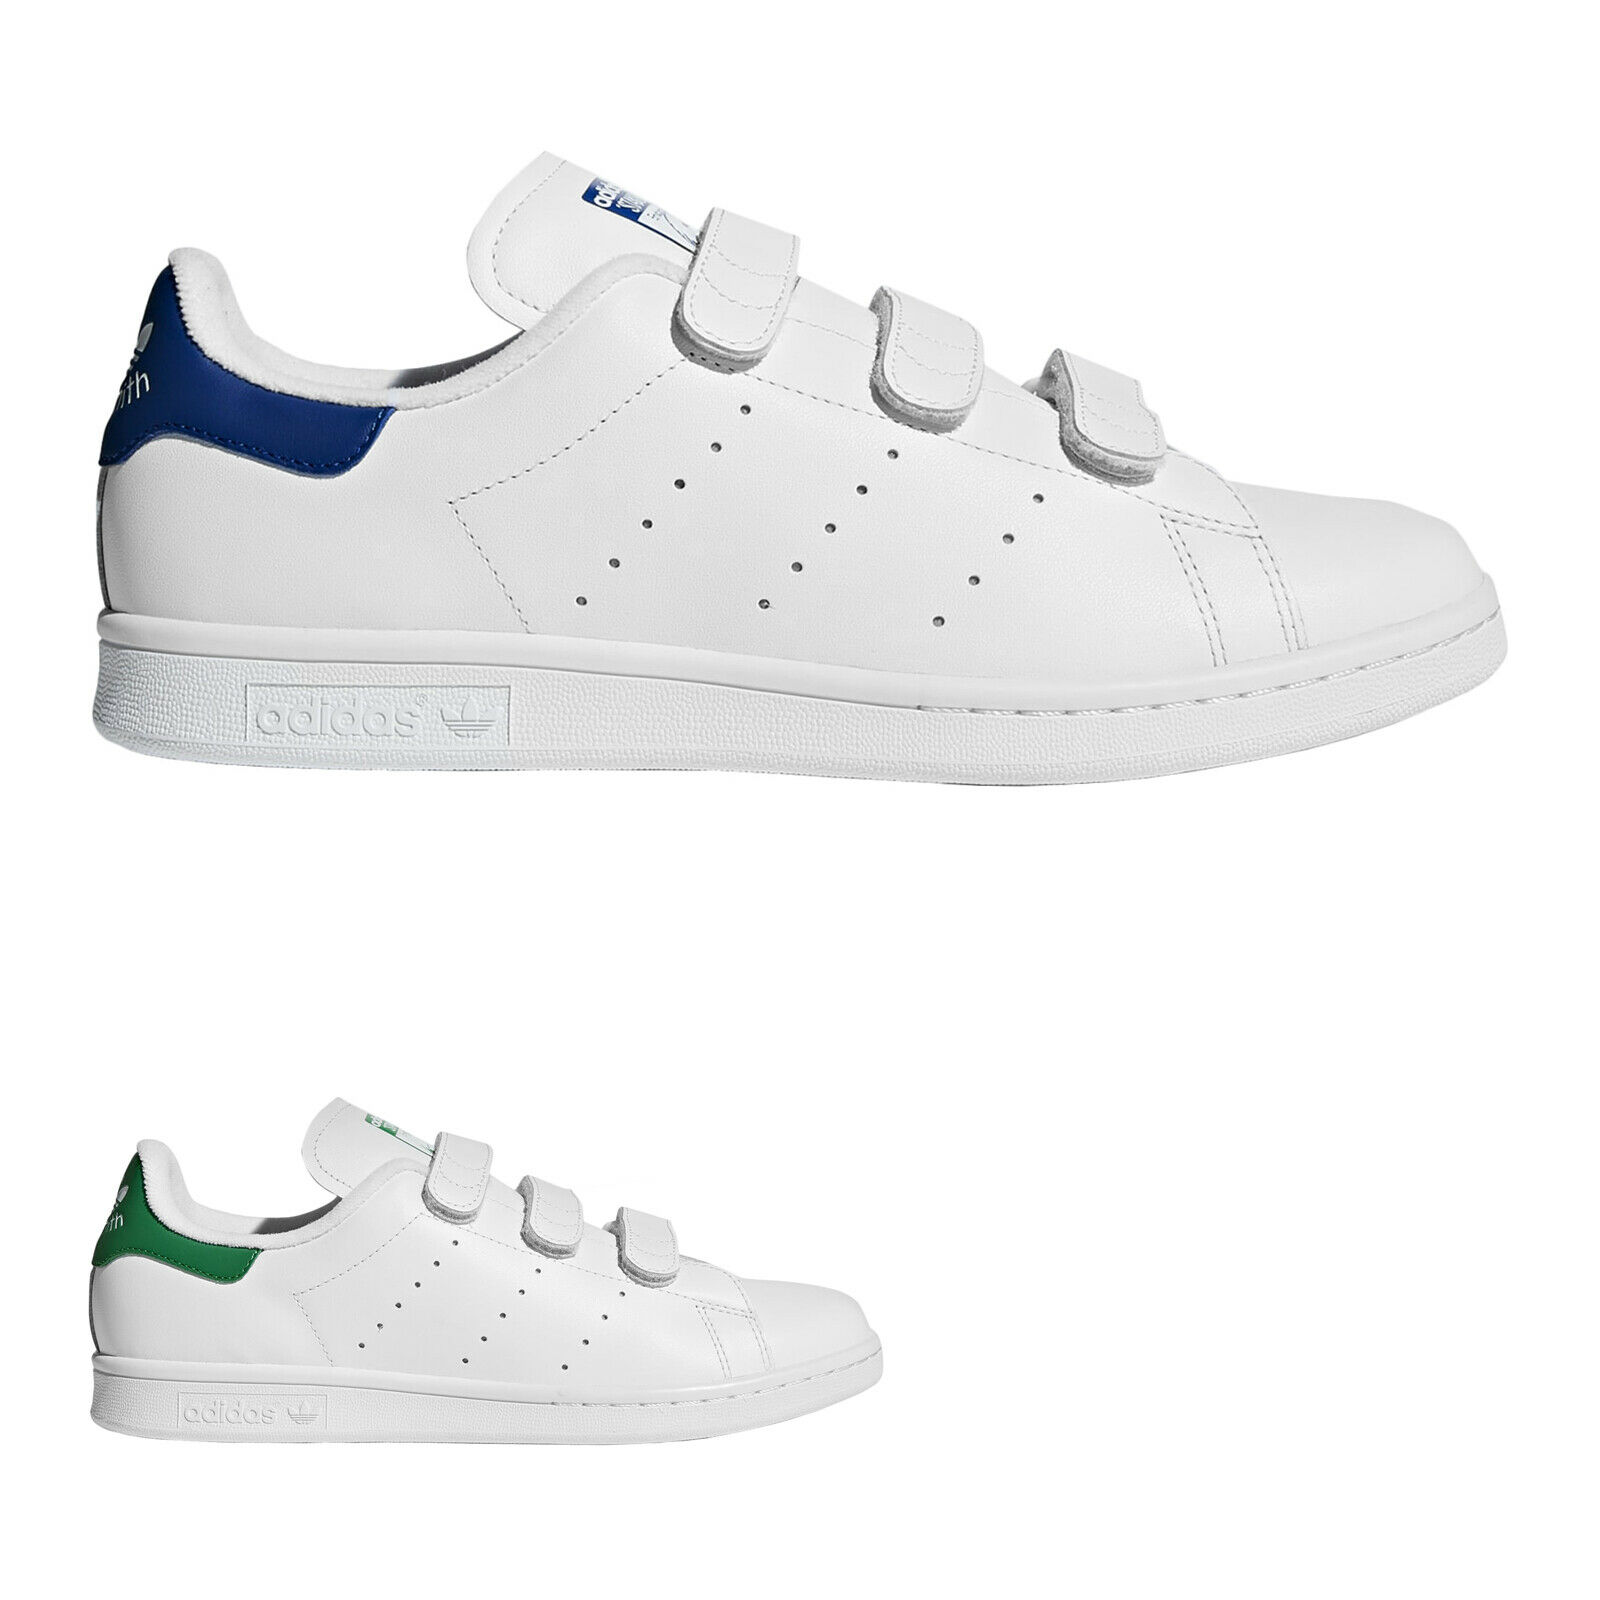 Adidas Stan Smith CF cuero Classic Hook-and-loop señores entrenador